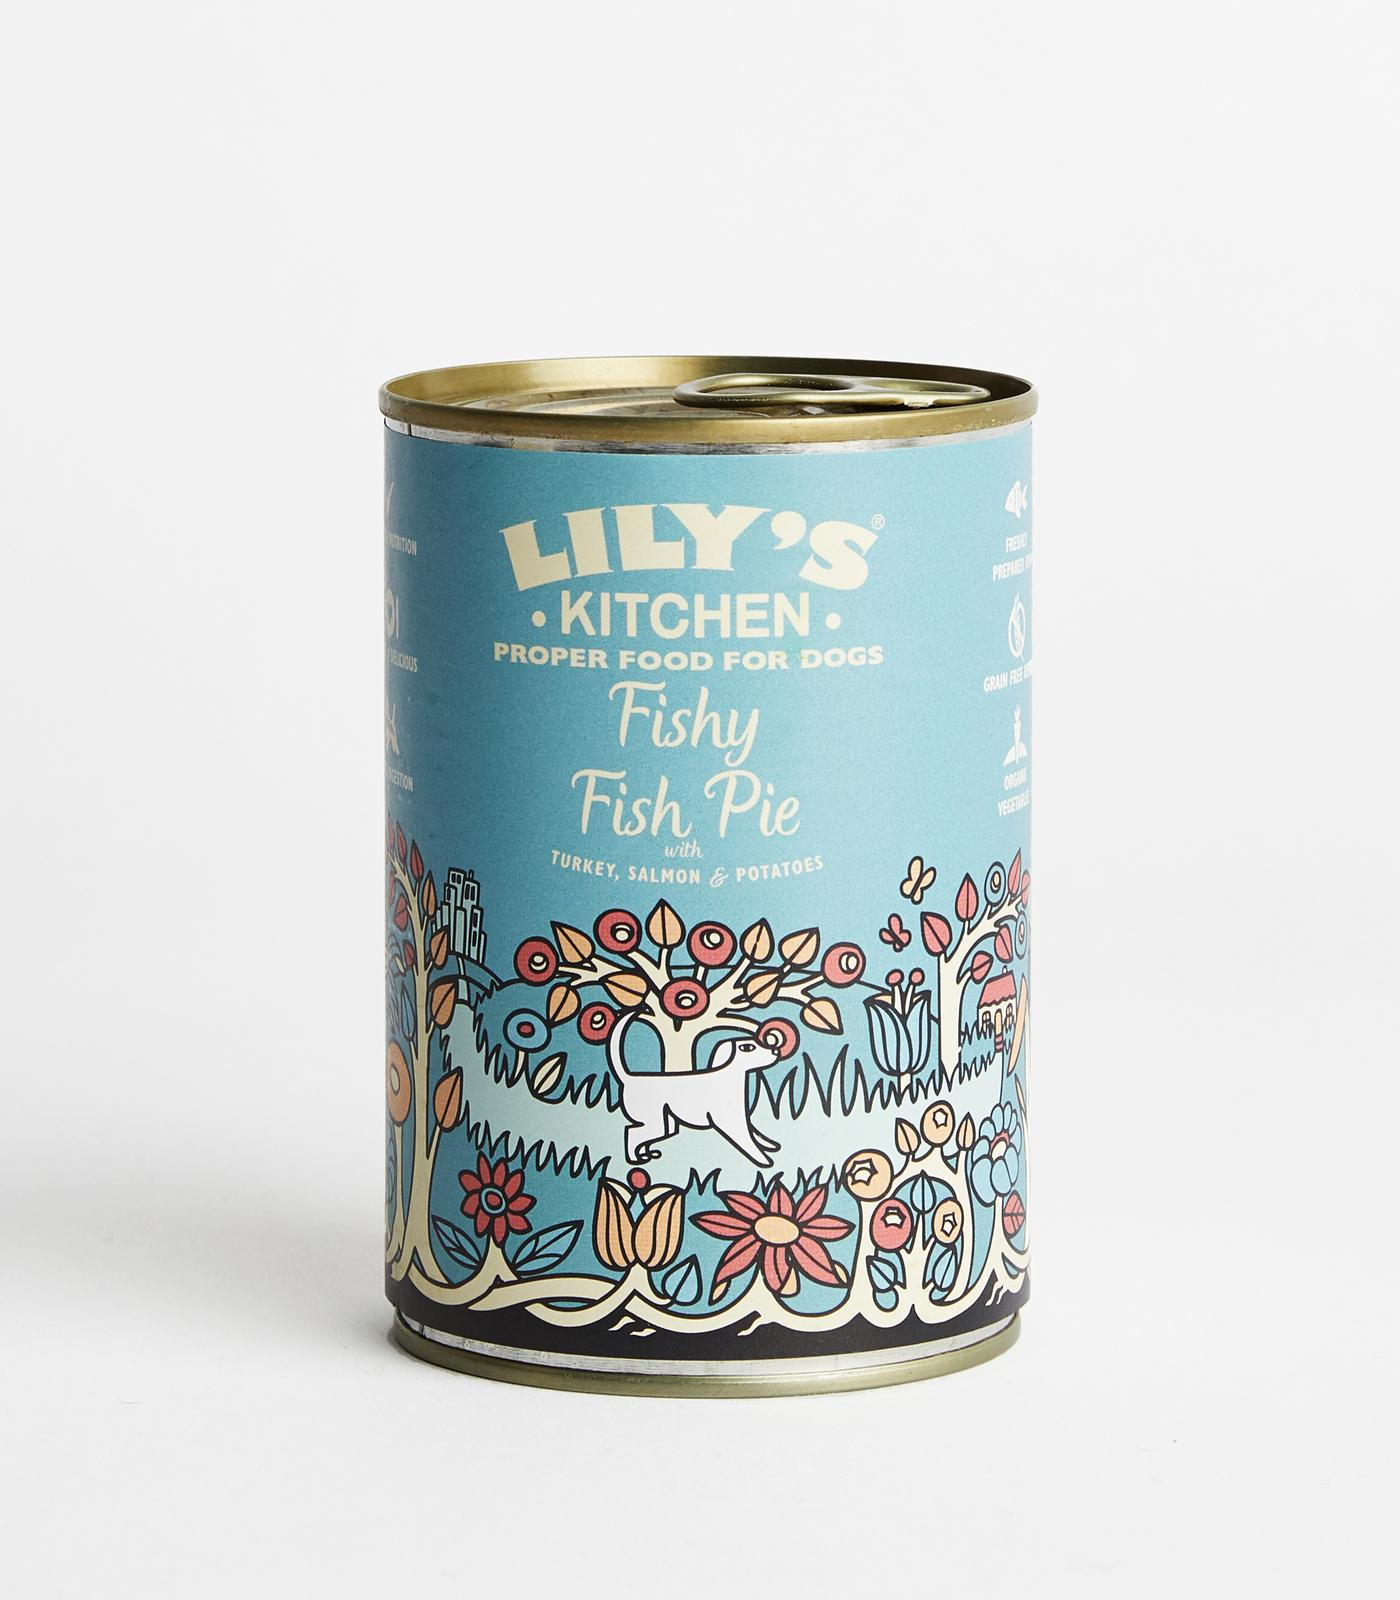 lilys kitchen fishy fish pie tins